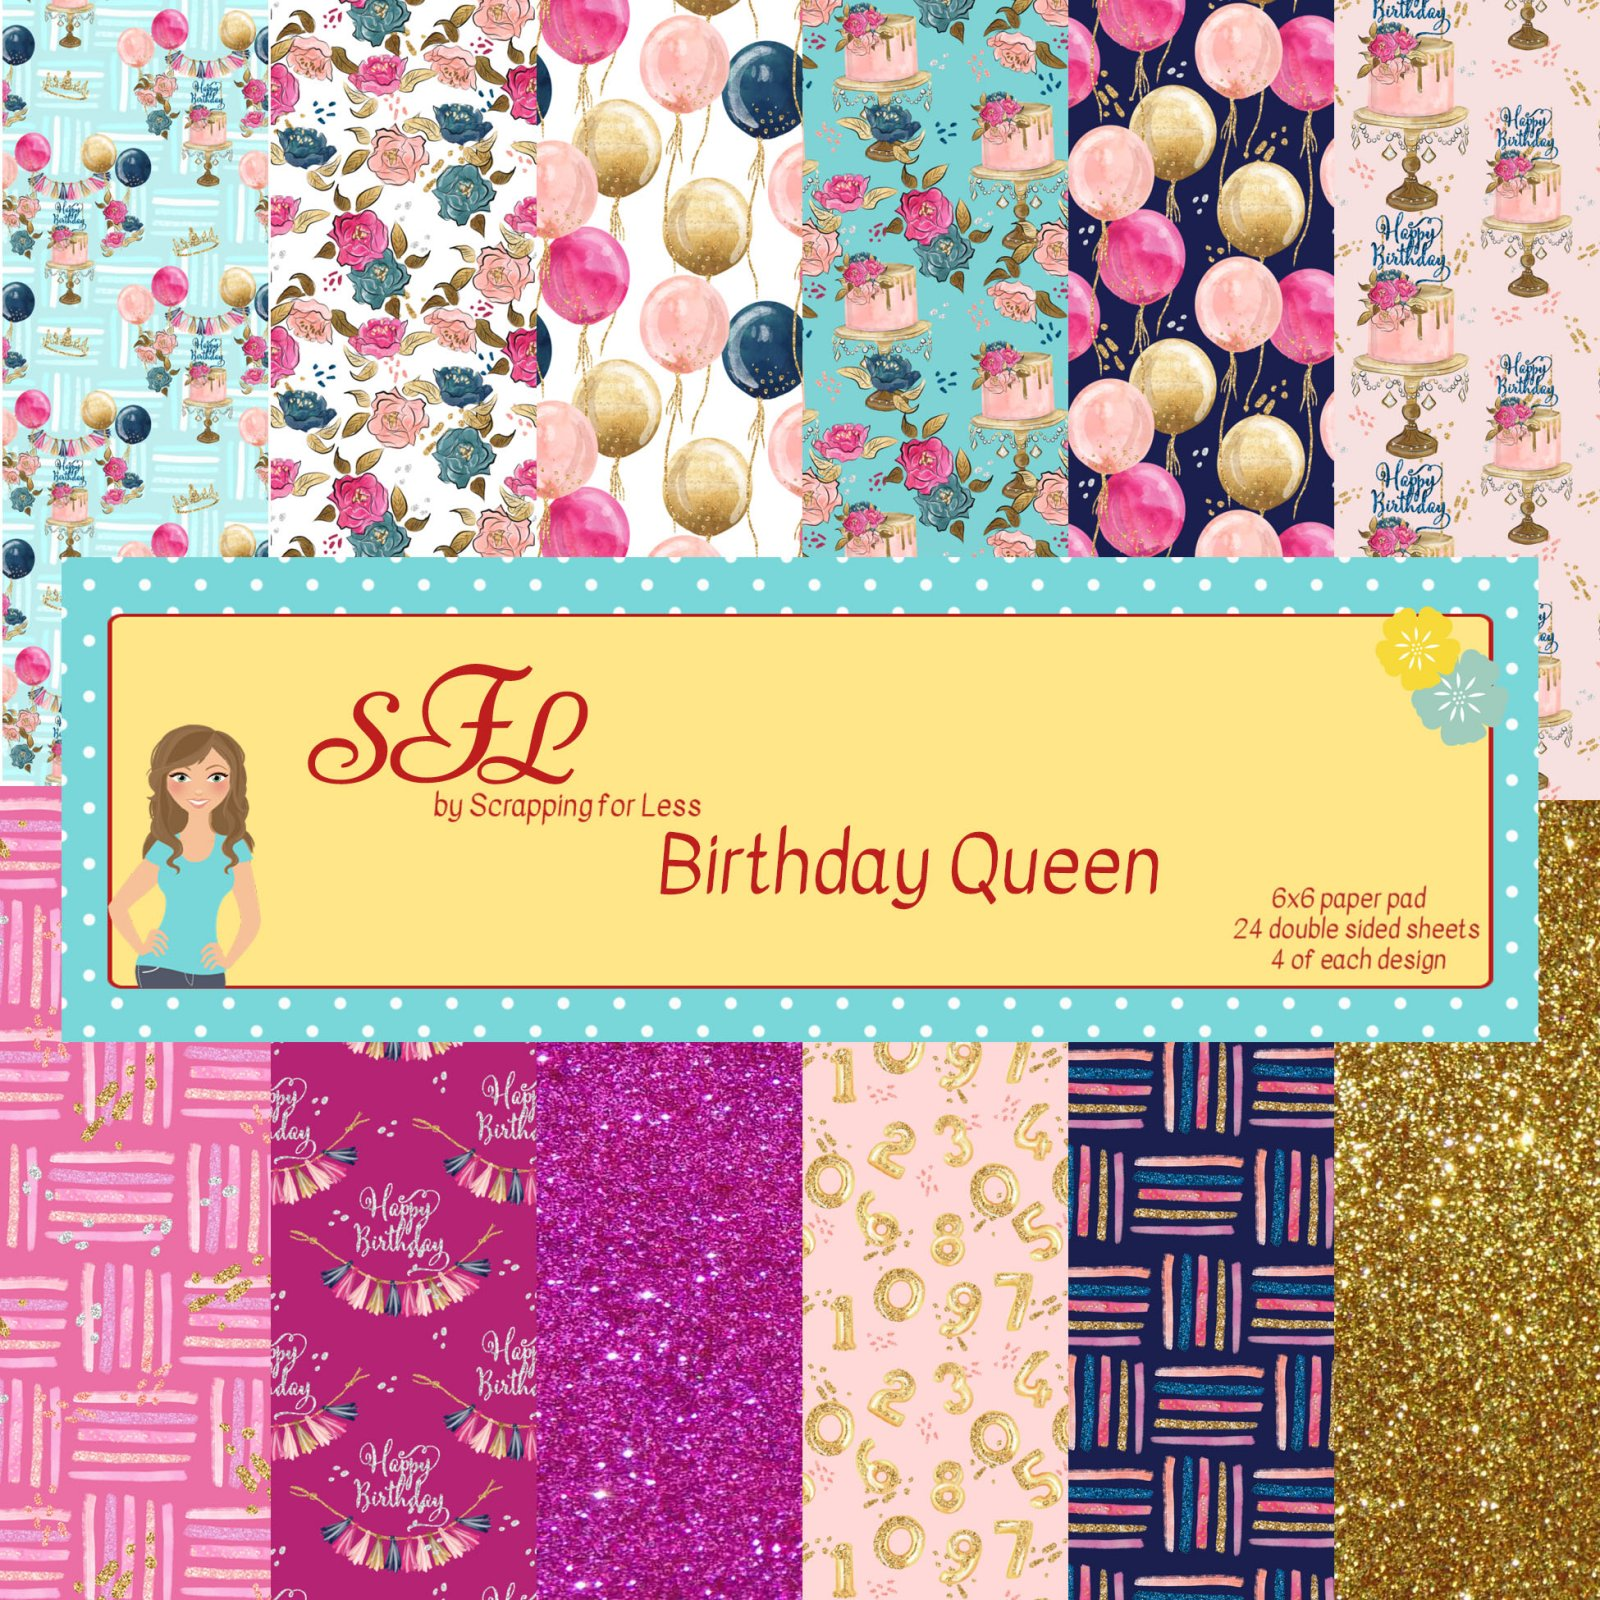 Scrapping for Less 6x6 Paper Pad Birthday Queen